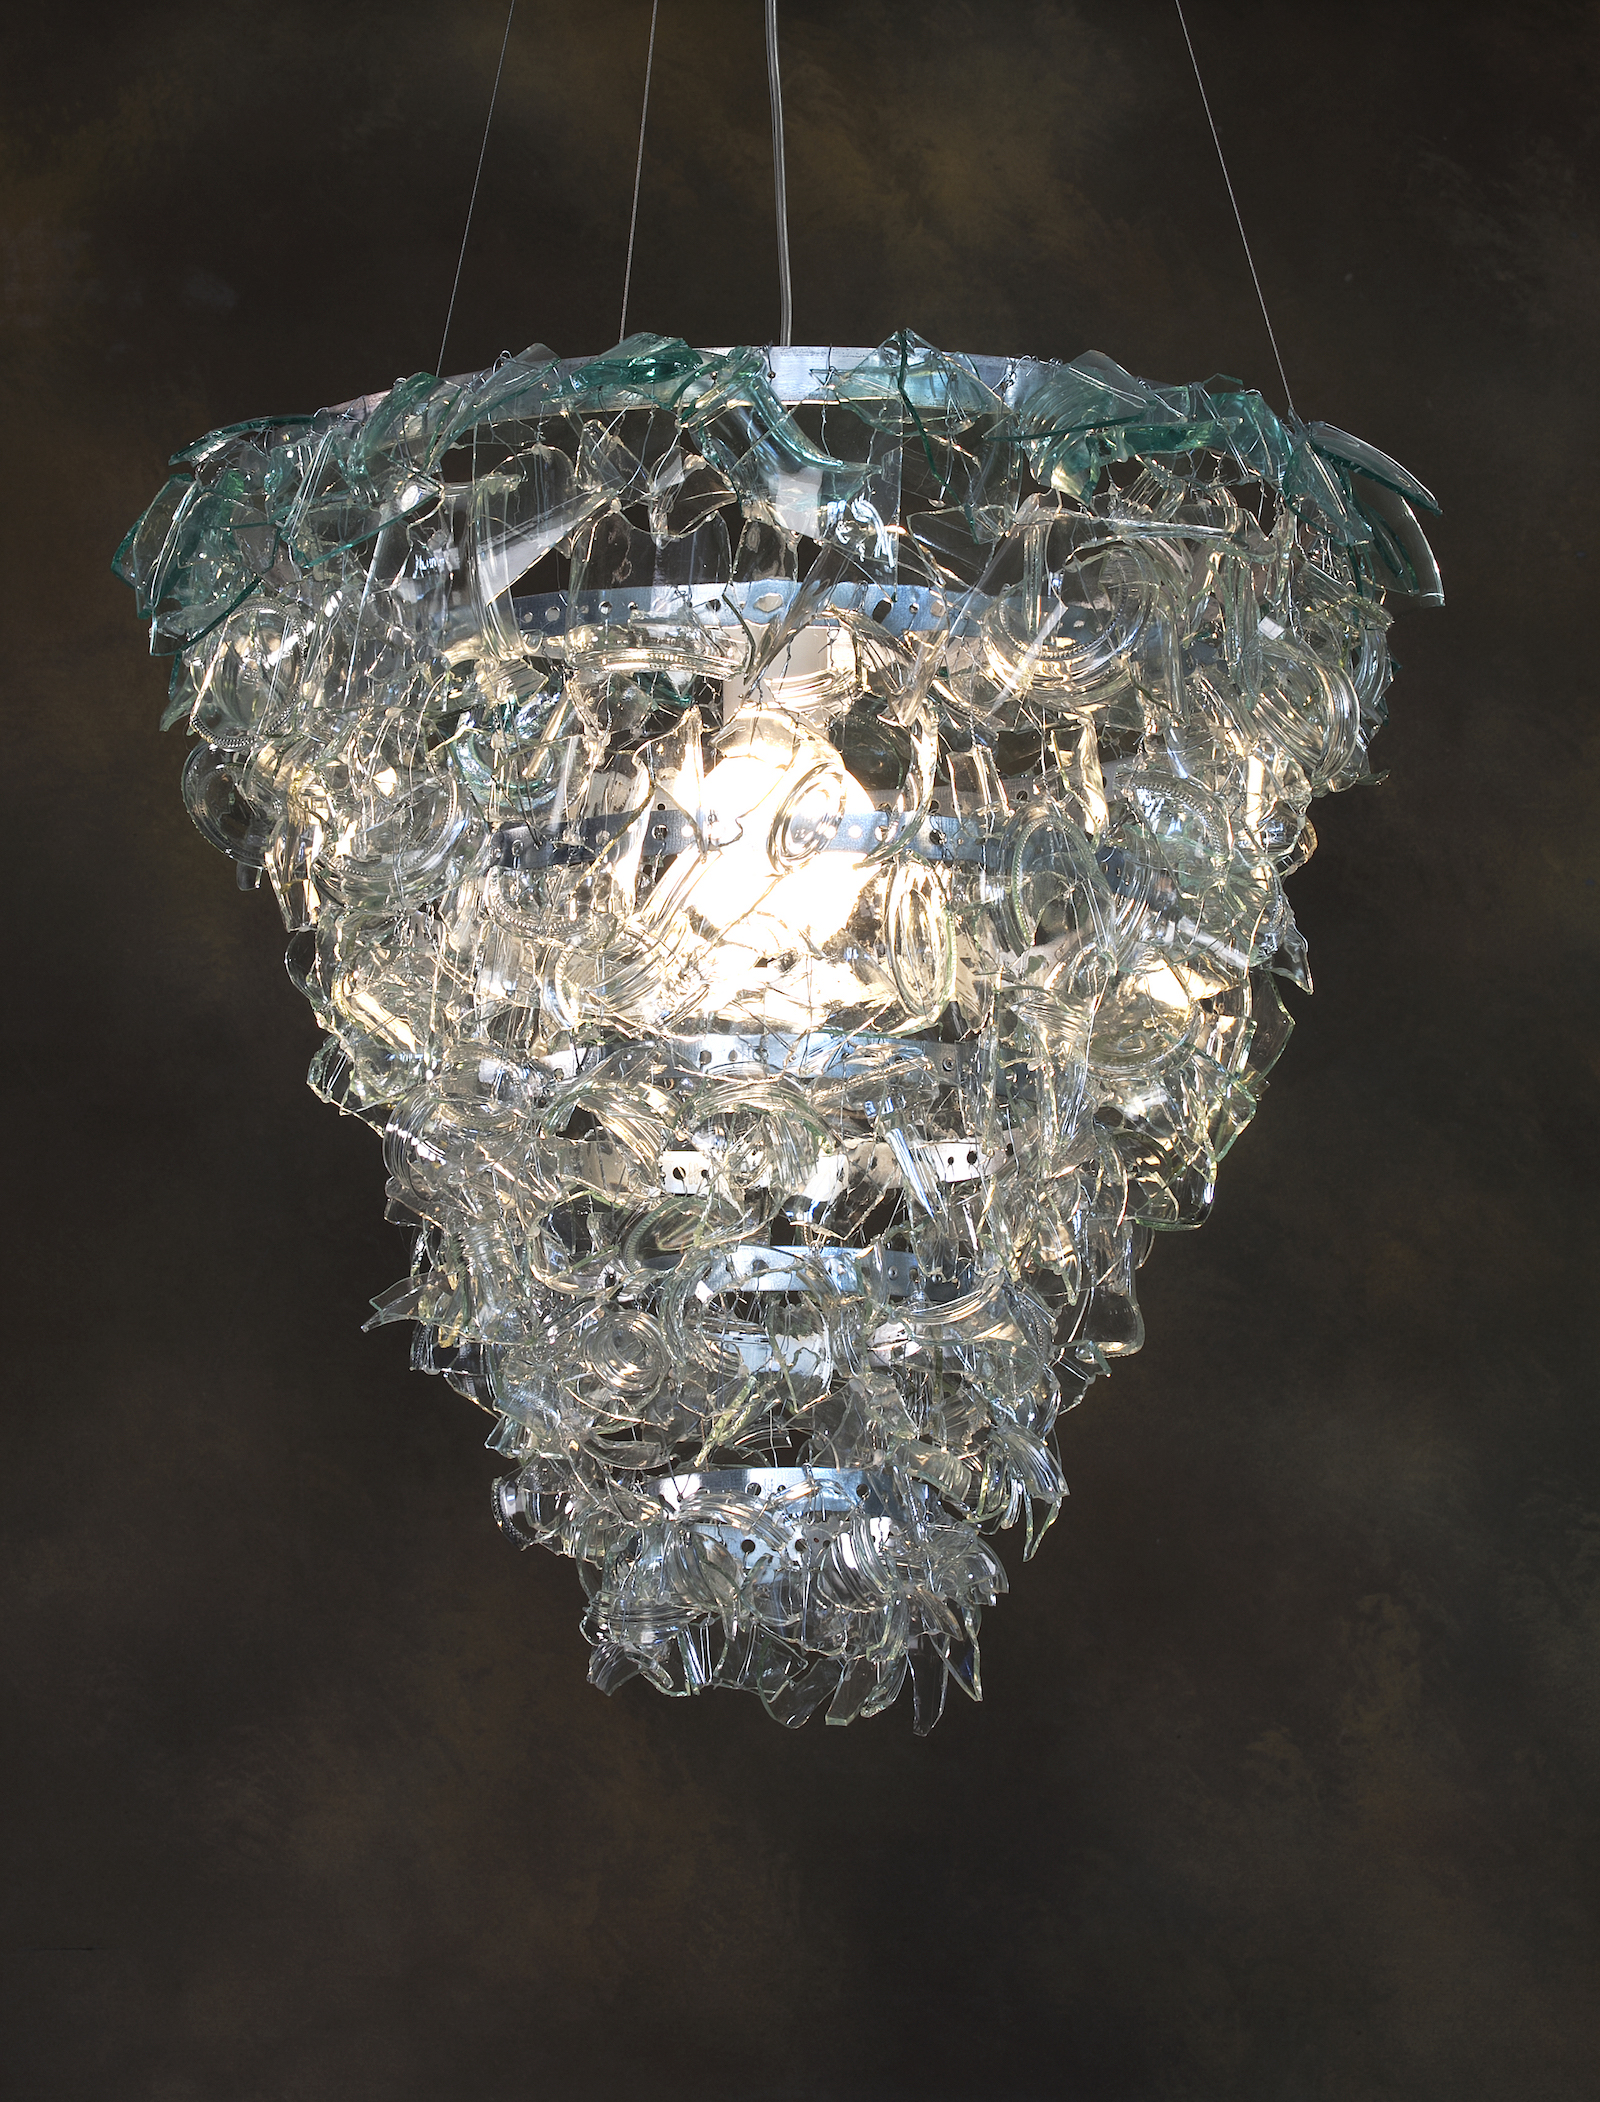 Large chandelier made of broken glass